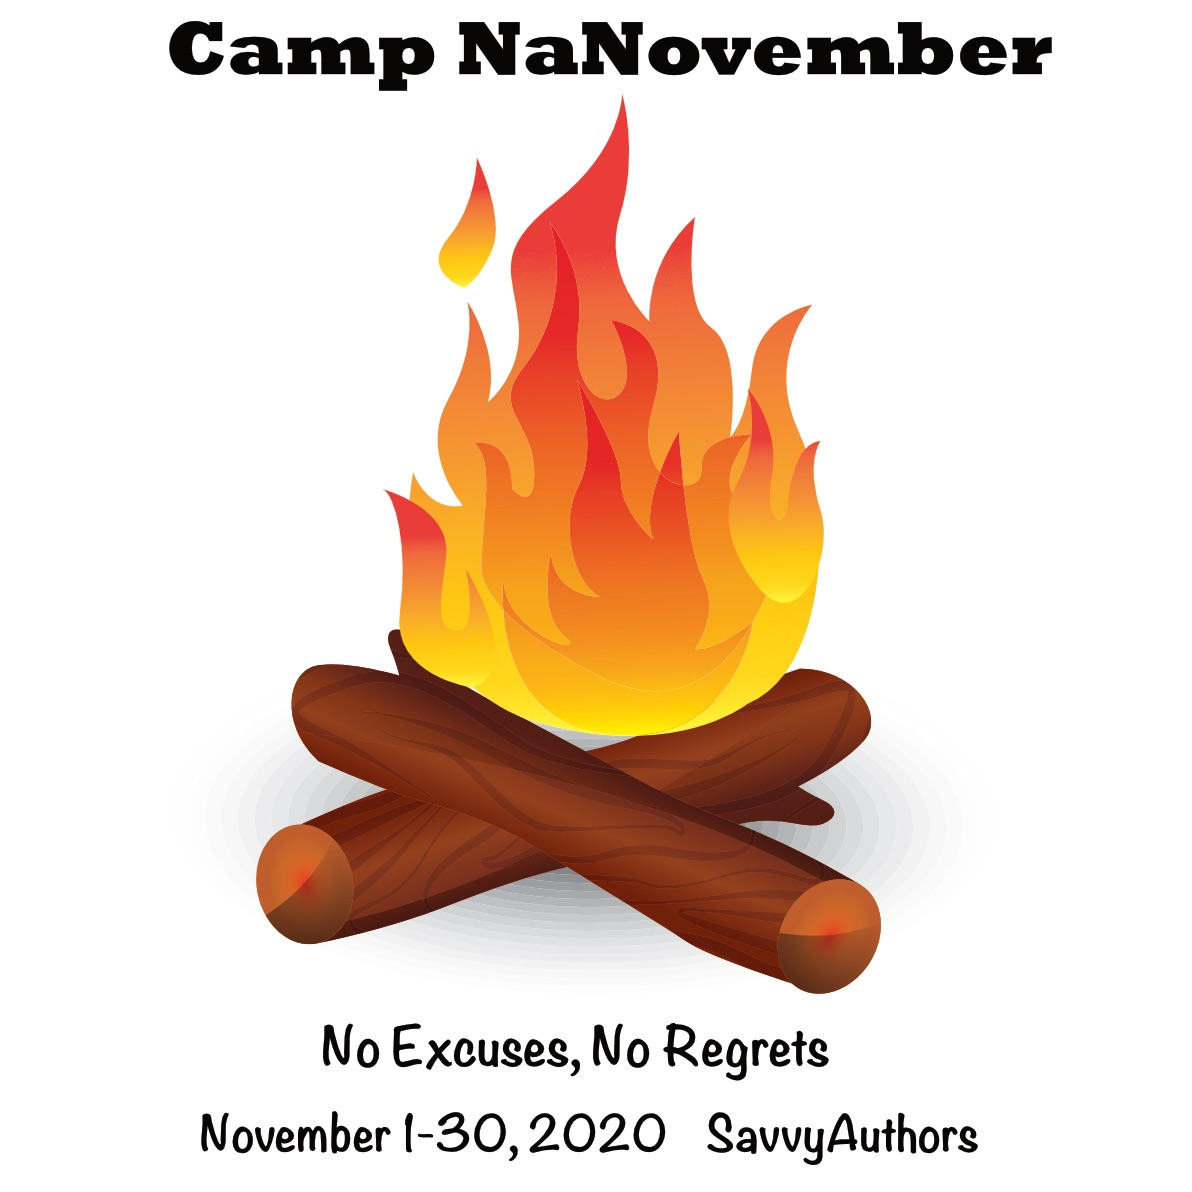 Special Event - Camp NaNovember - Your NaNovember Boot Camp 2020 Mission: 50,000 words. https://bit.ly/3dOKwc5  #writingcommunity  #writingtips #classes 4 #writers #writerslife #amediting #amwriting #indieauthor #writer #authorpic.twitter.com/nt9AcaSPXZ